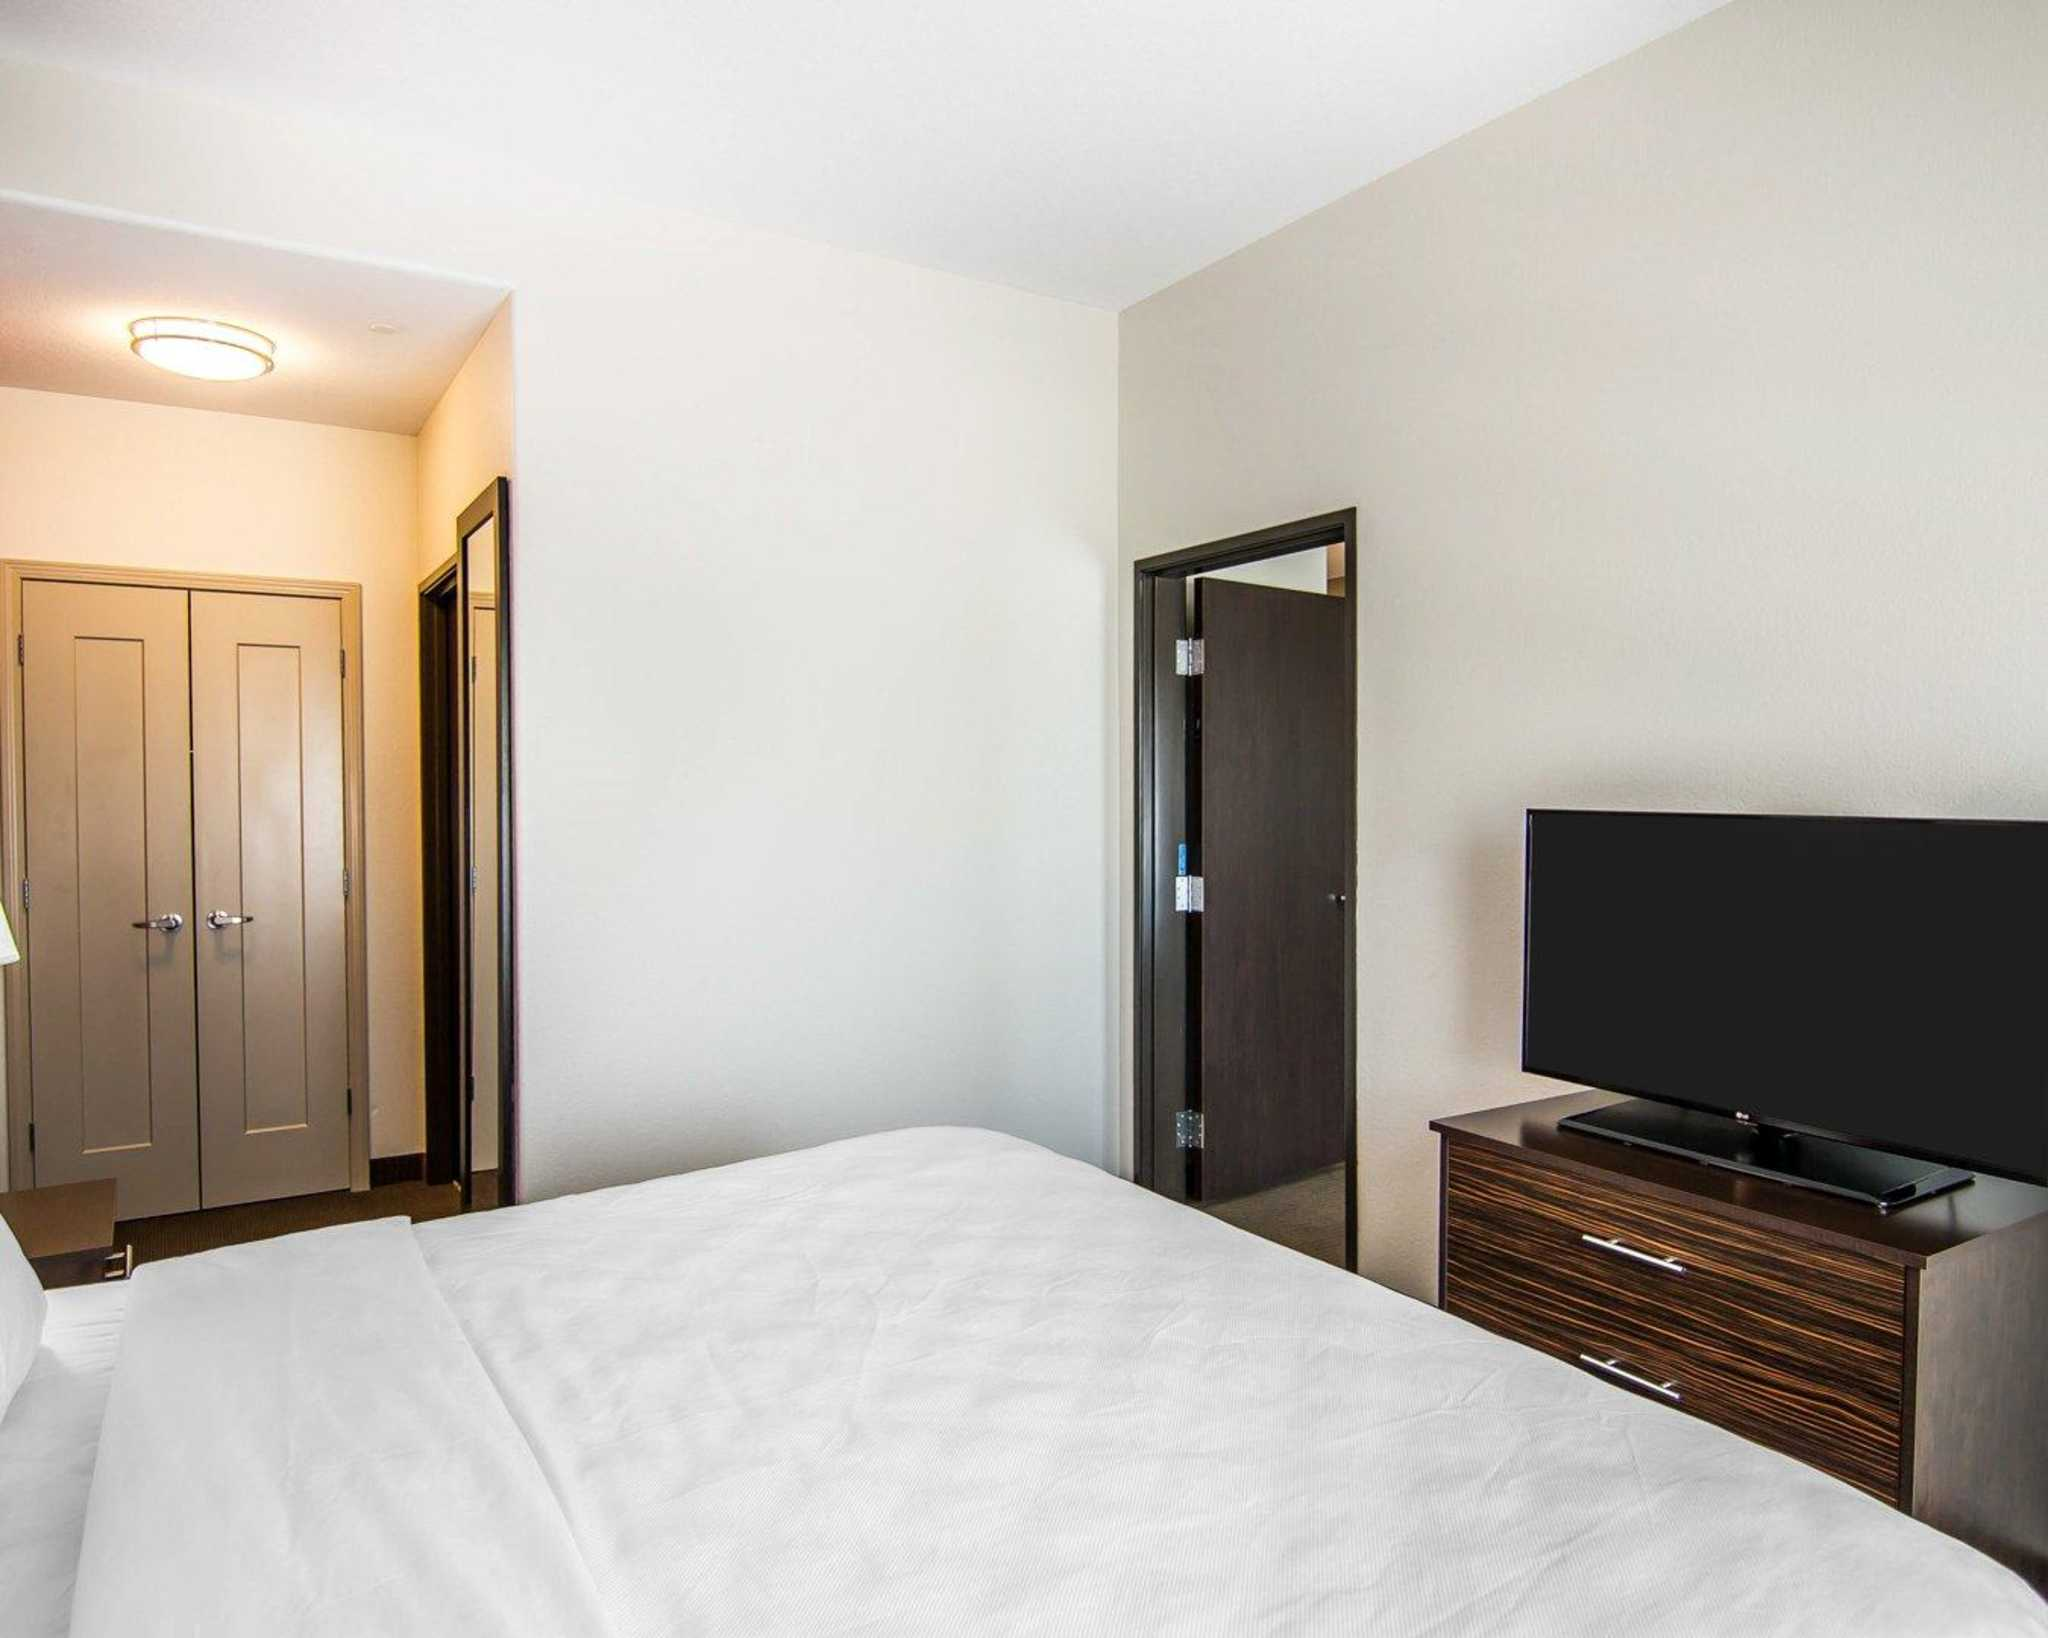 MainStay Suites image 5